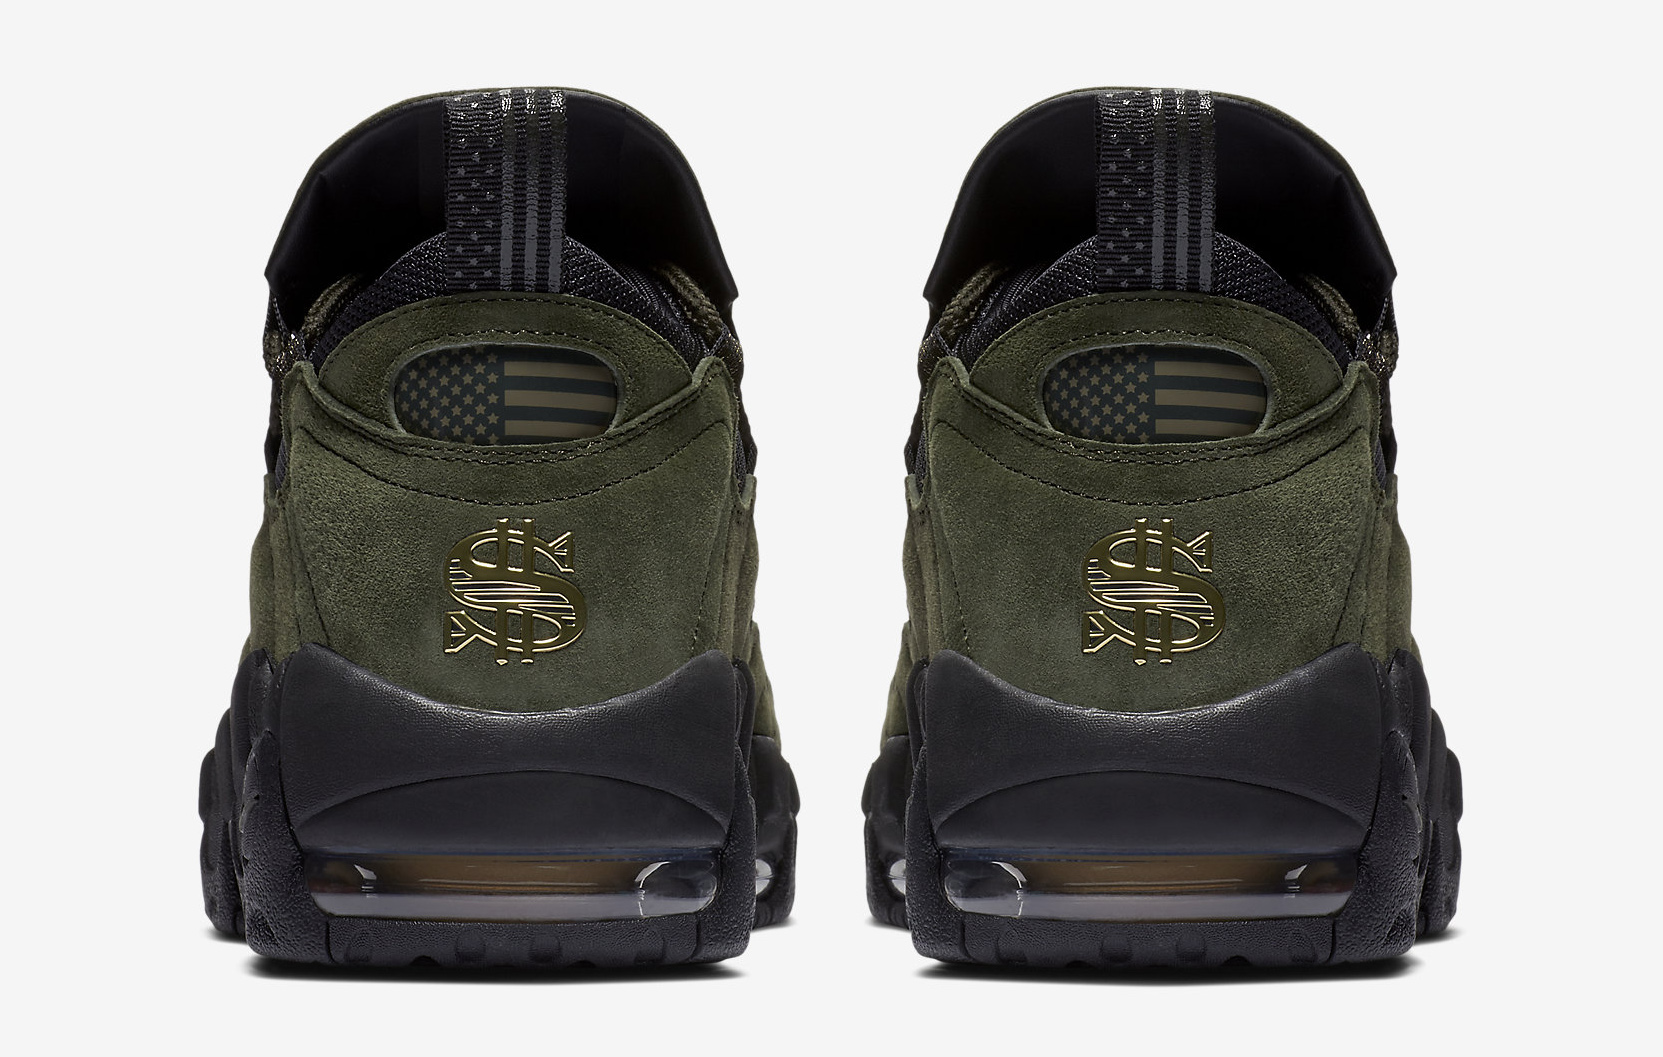 """Nike Air More Money """"Global Currency"""" AJ7383 002 For Sale"""